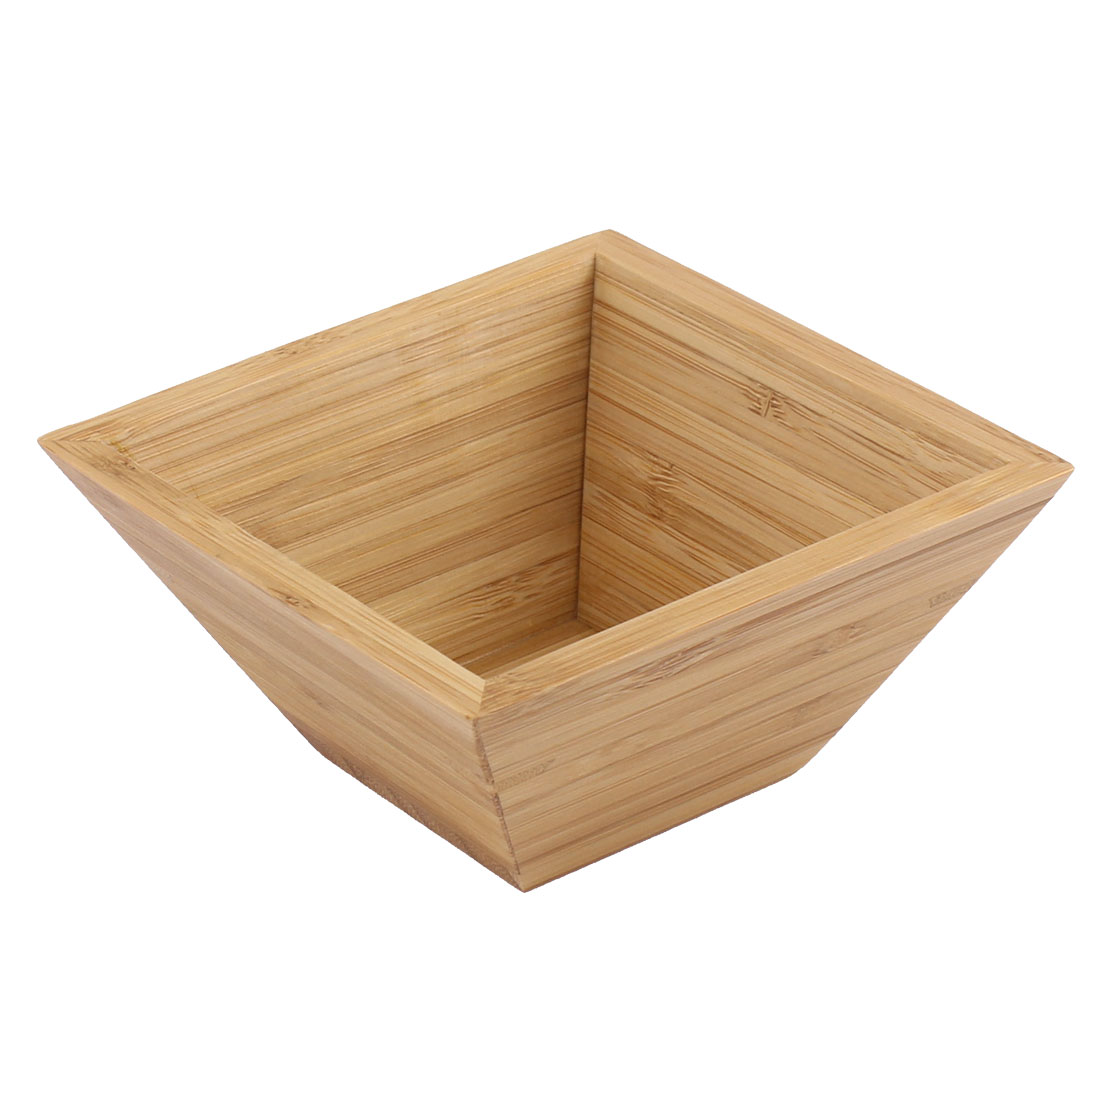 Home Kitchen Bamboo Square Salad Bowl Serving Dishes Dinnerware